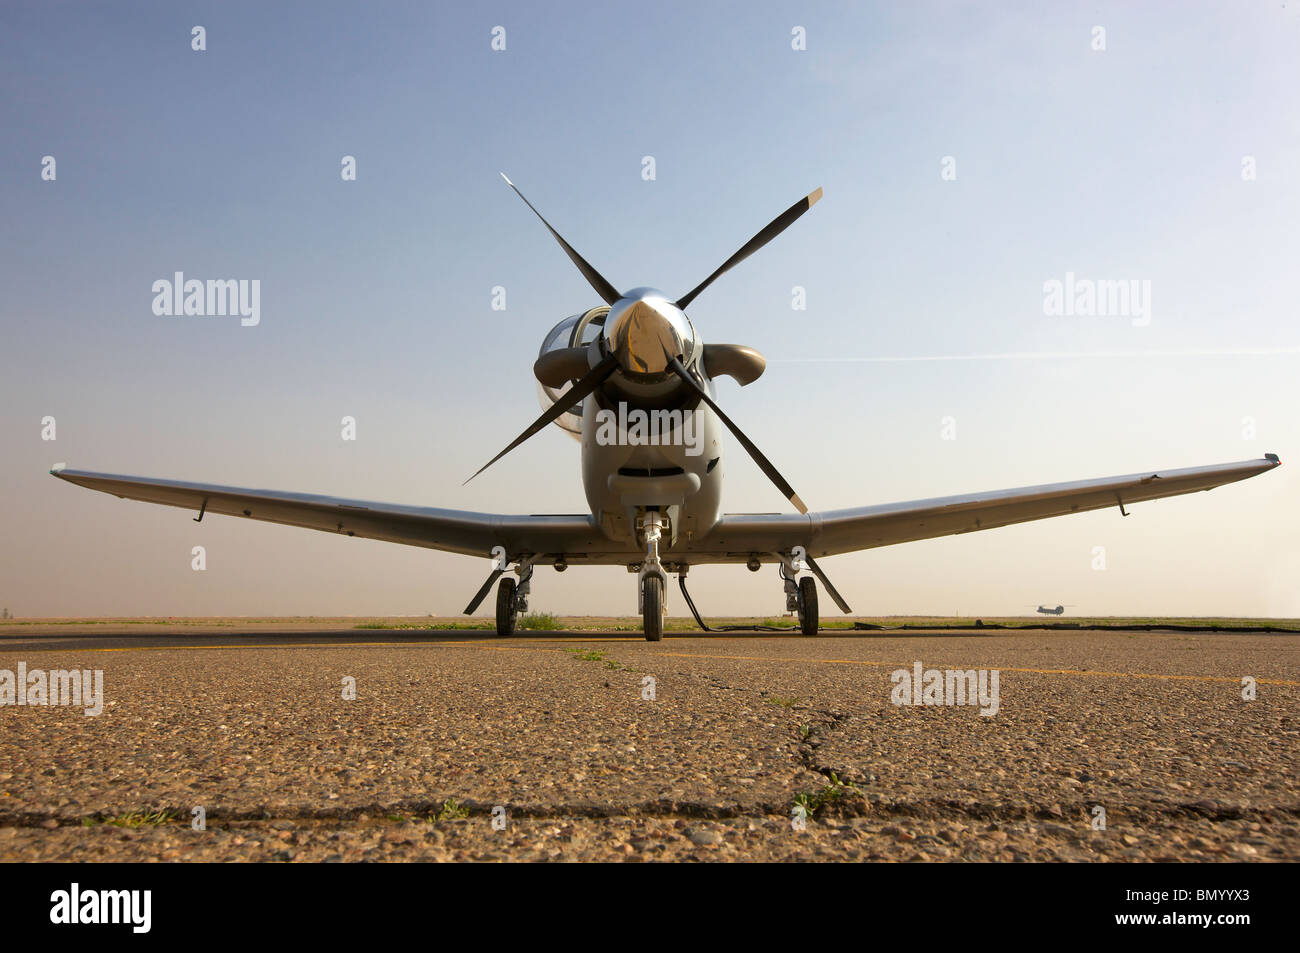 Low angle view of an Iraqi Air Force T-6 Texan trainer aircraft. - Stock Image